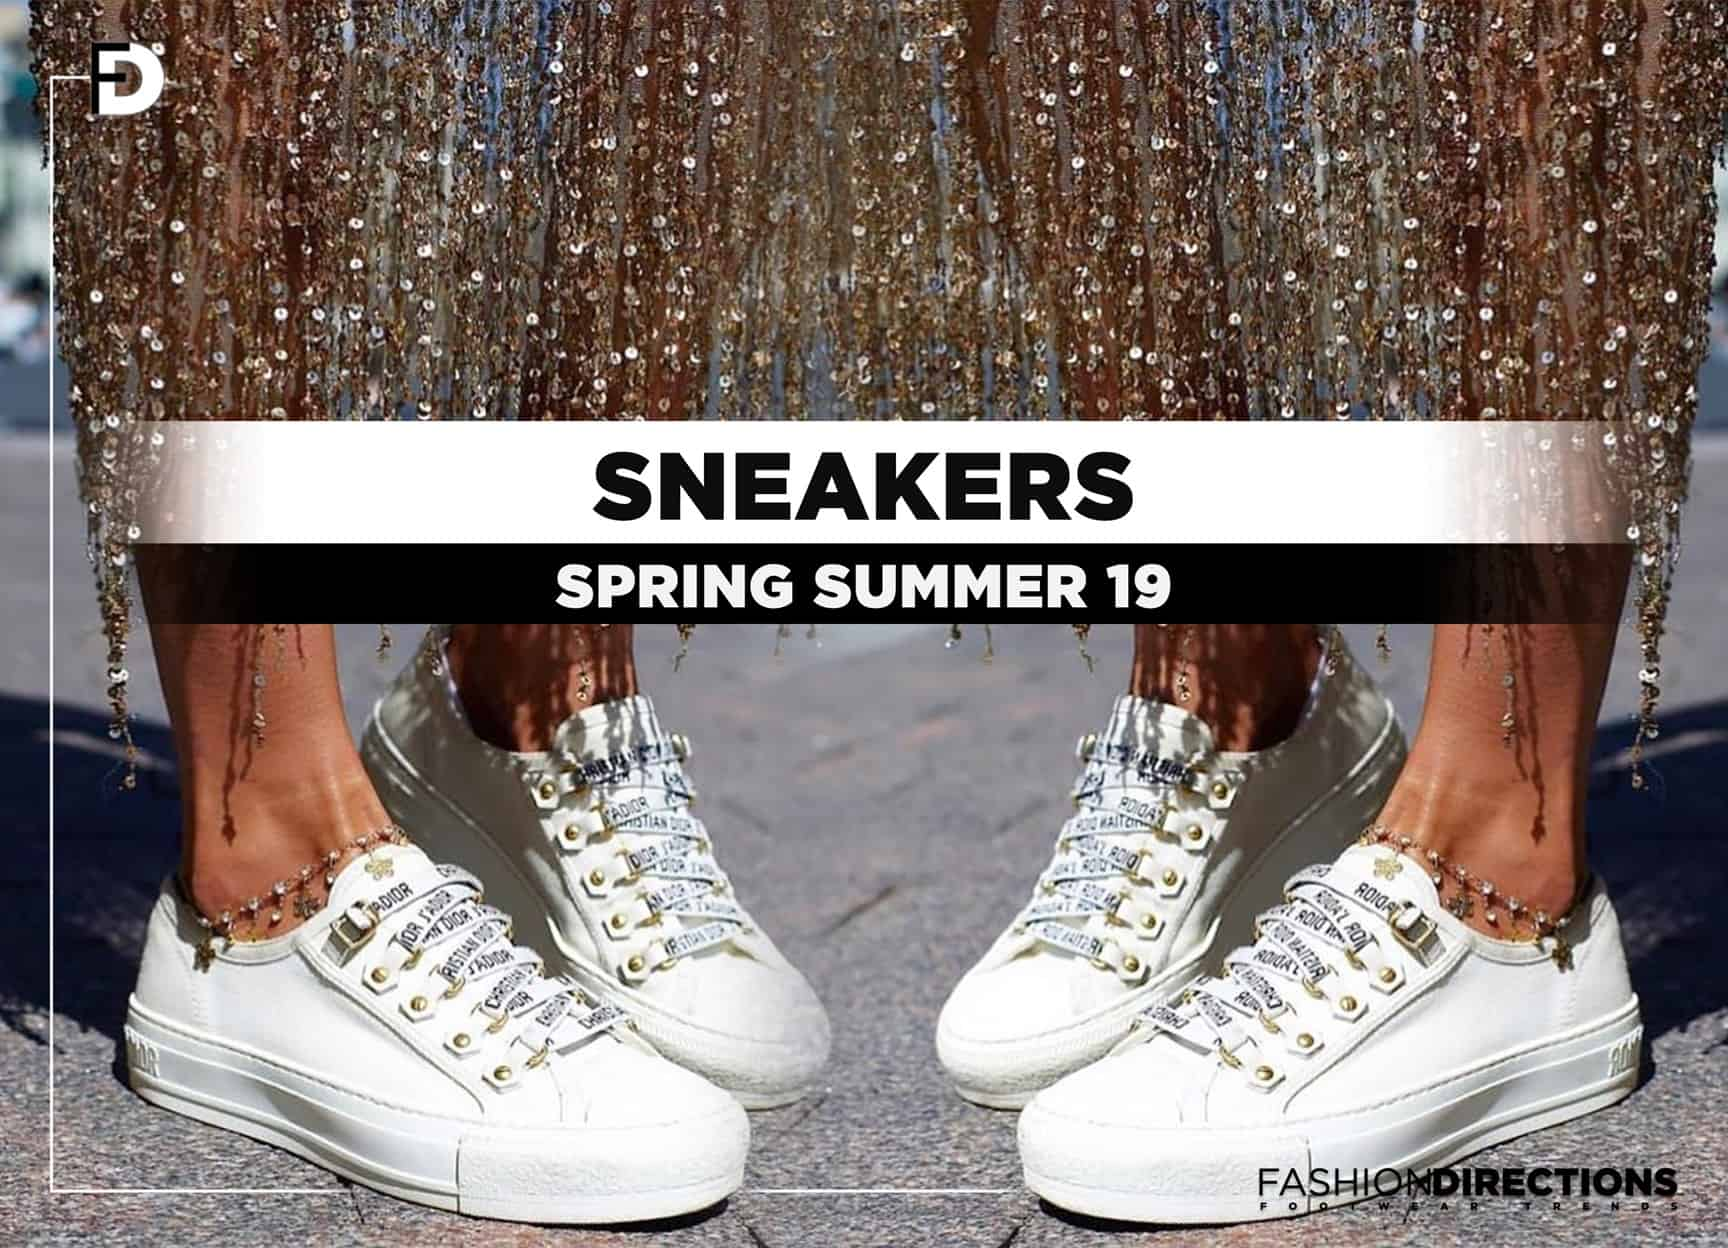 ss19 sneakers 2019